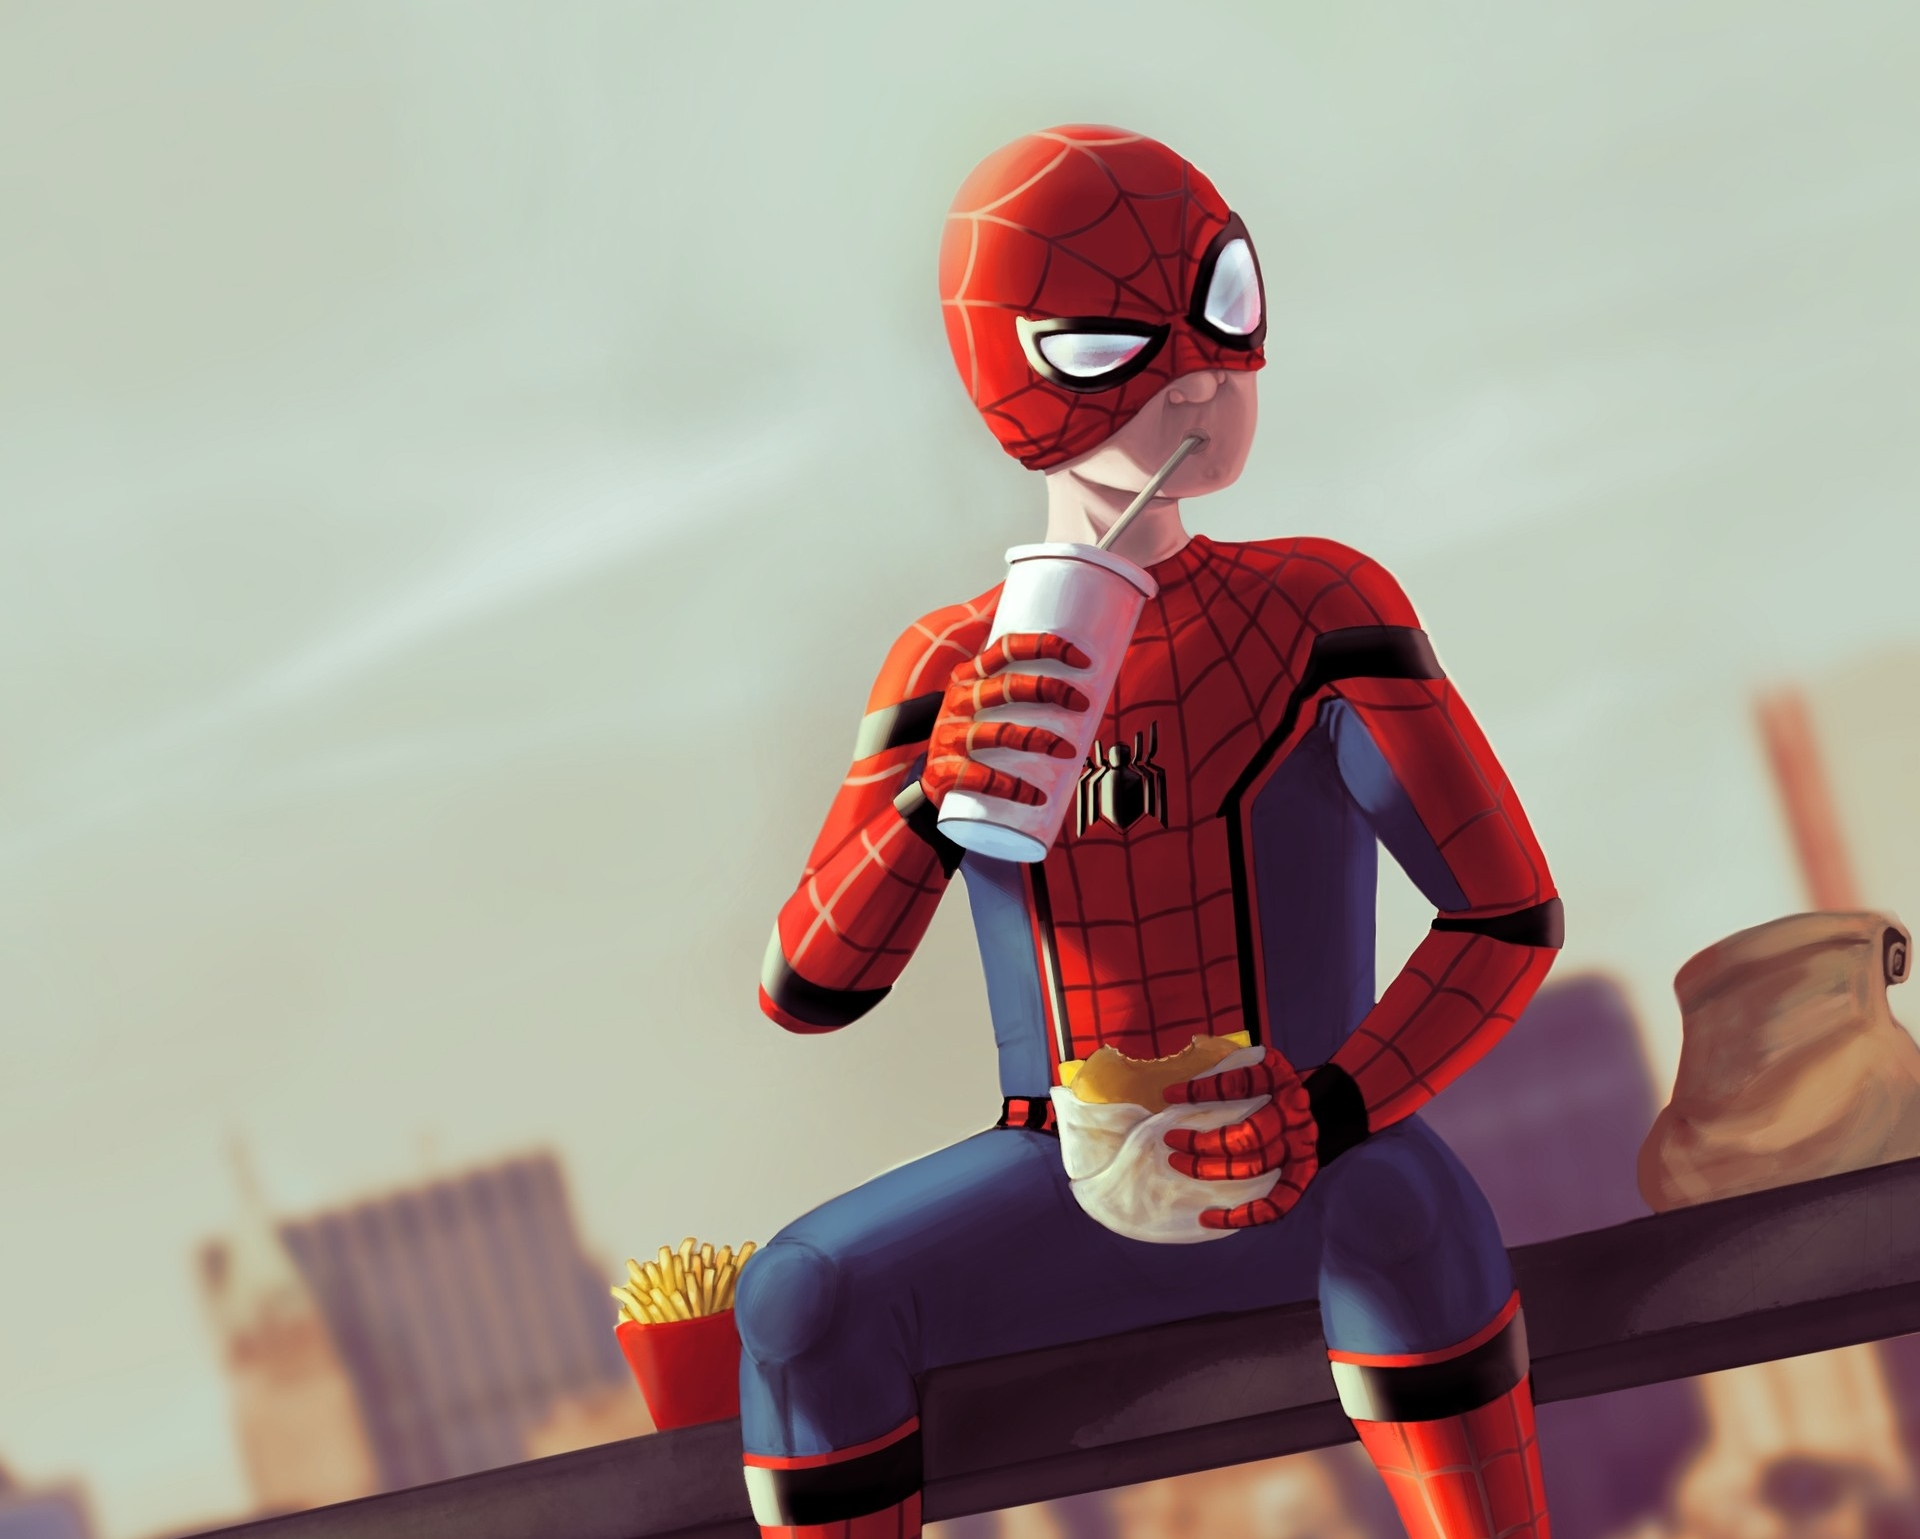 wallpapers and backgrounds,red,fictional character,superhero,cartoon,action figure